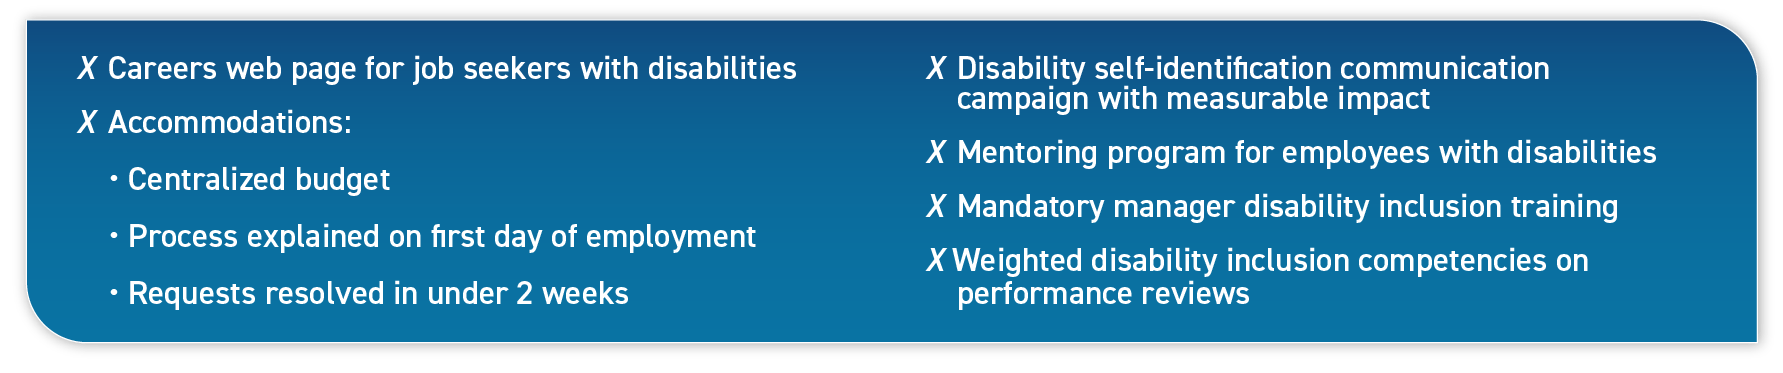 Careers web page for job seekers with disabilities; Accommodations: Centralized budget, Process explained on first day of employment, Requests resolved in under 2 weeks; Disability self-identification communication campaign with measurable impact; Mentoring program for employees with disabilities; Mandatory manager disability inclusion training; Weighted disability inclusion competencies on performance reviews.